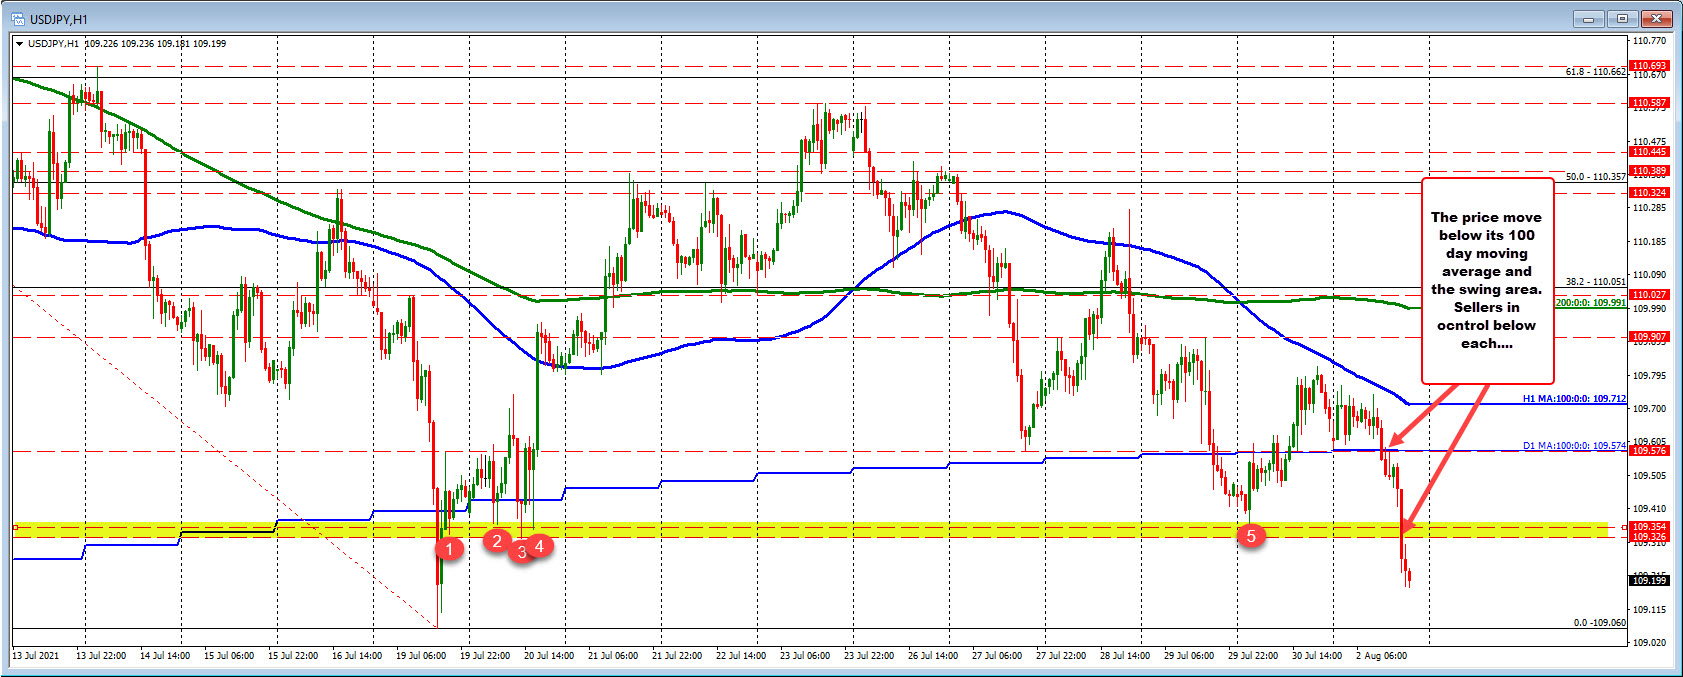 Buying of JPY pairs as London traders exit